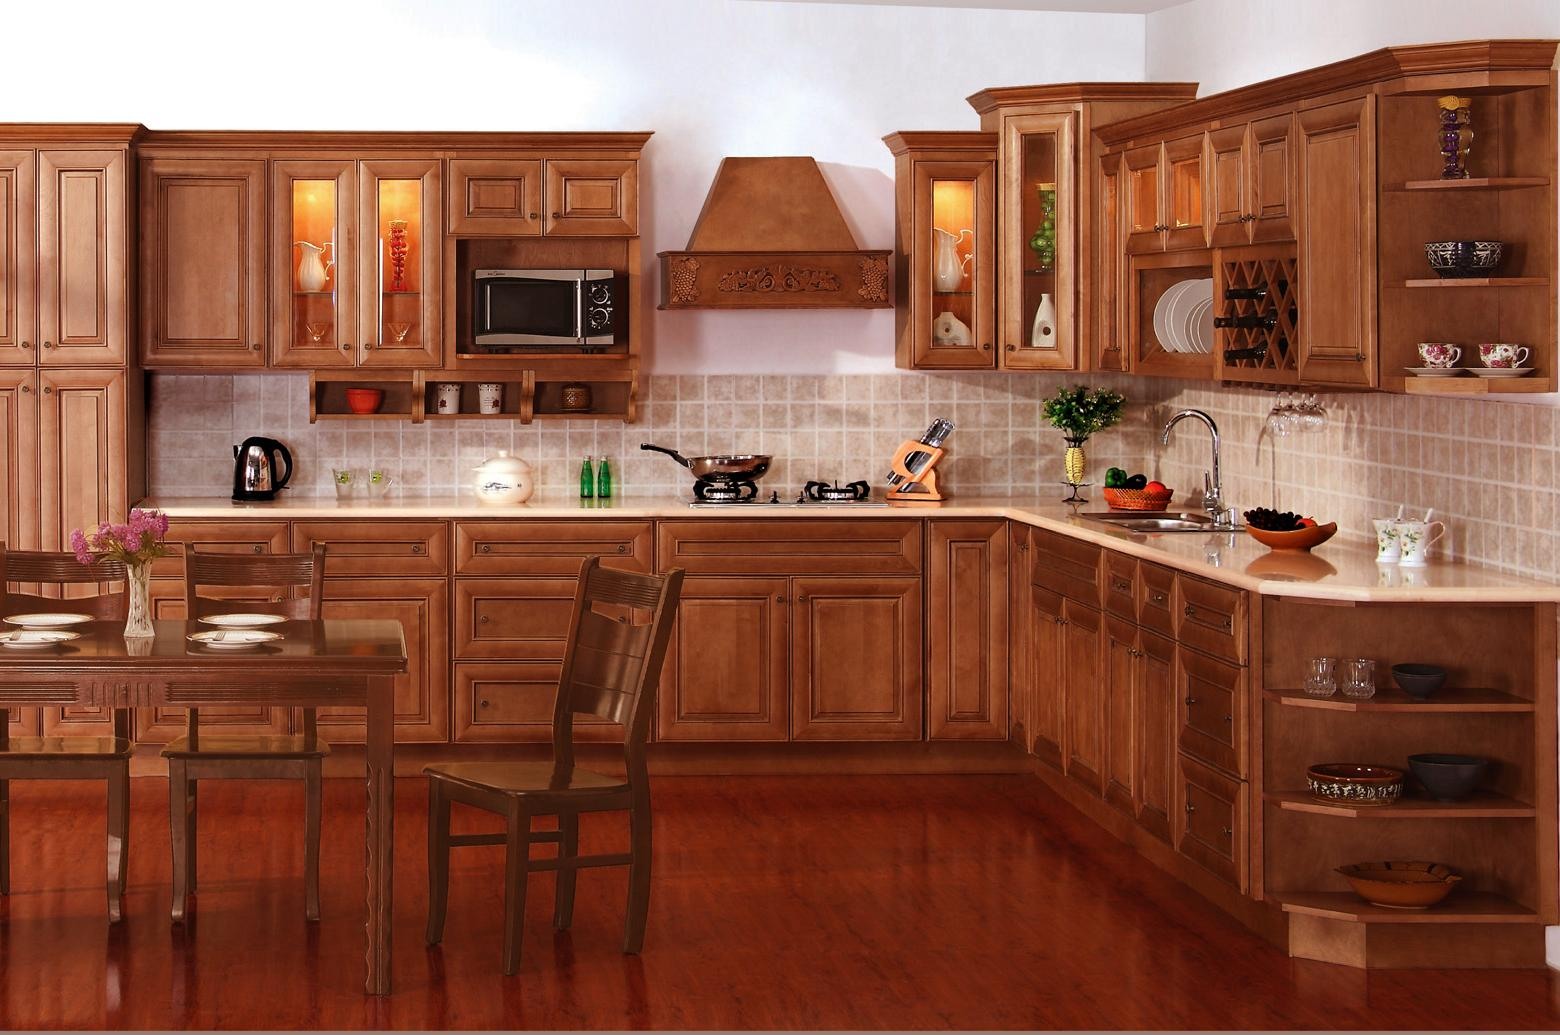 Coffee Color Kitchen Cabinets Bobs Furniture Table The Cabinet Spot Maple